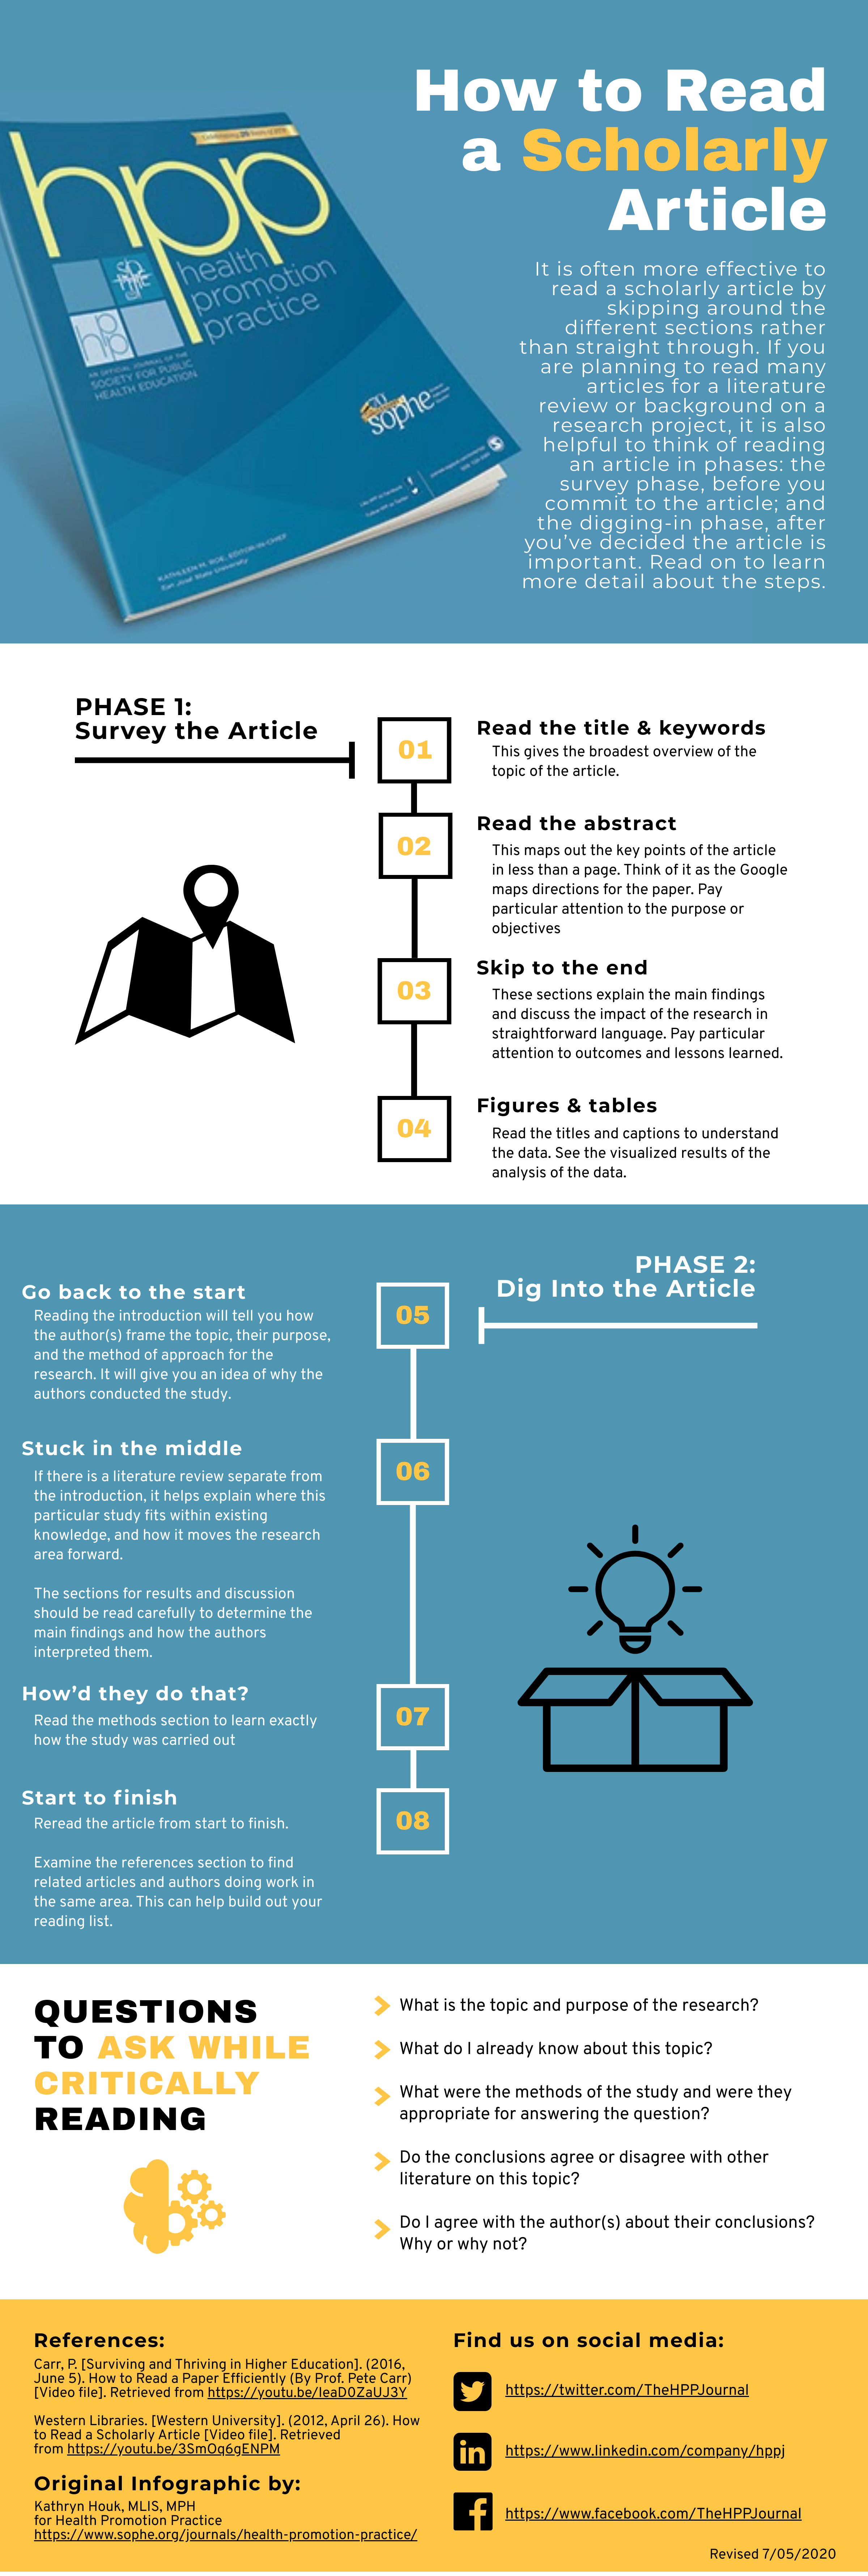 Infographic of How to Read a Scholarly Article